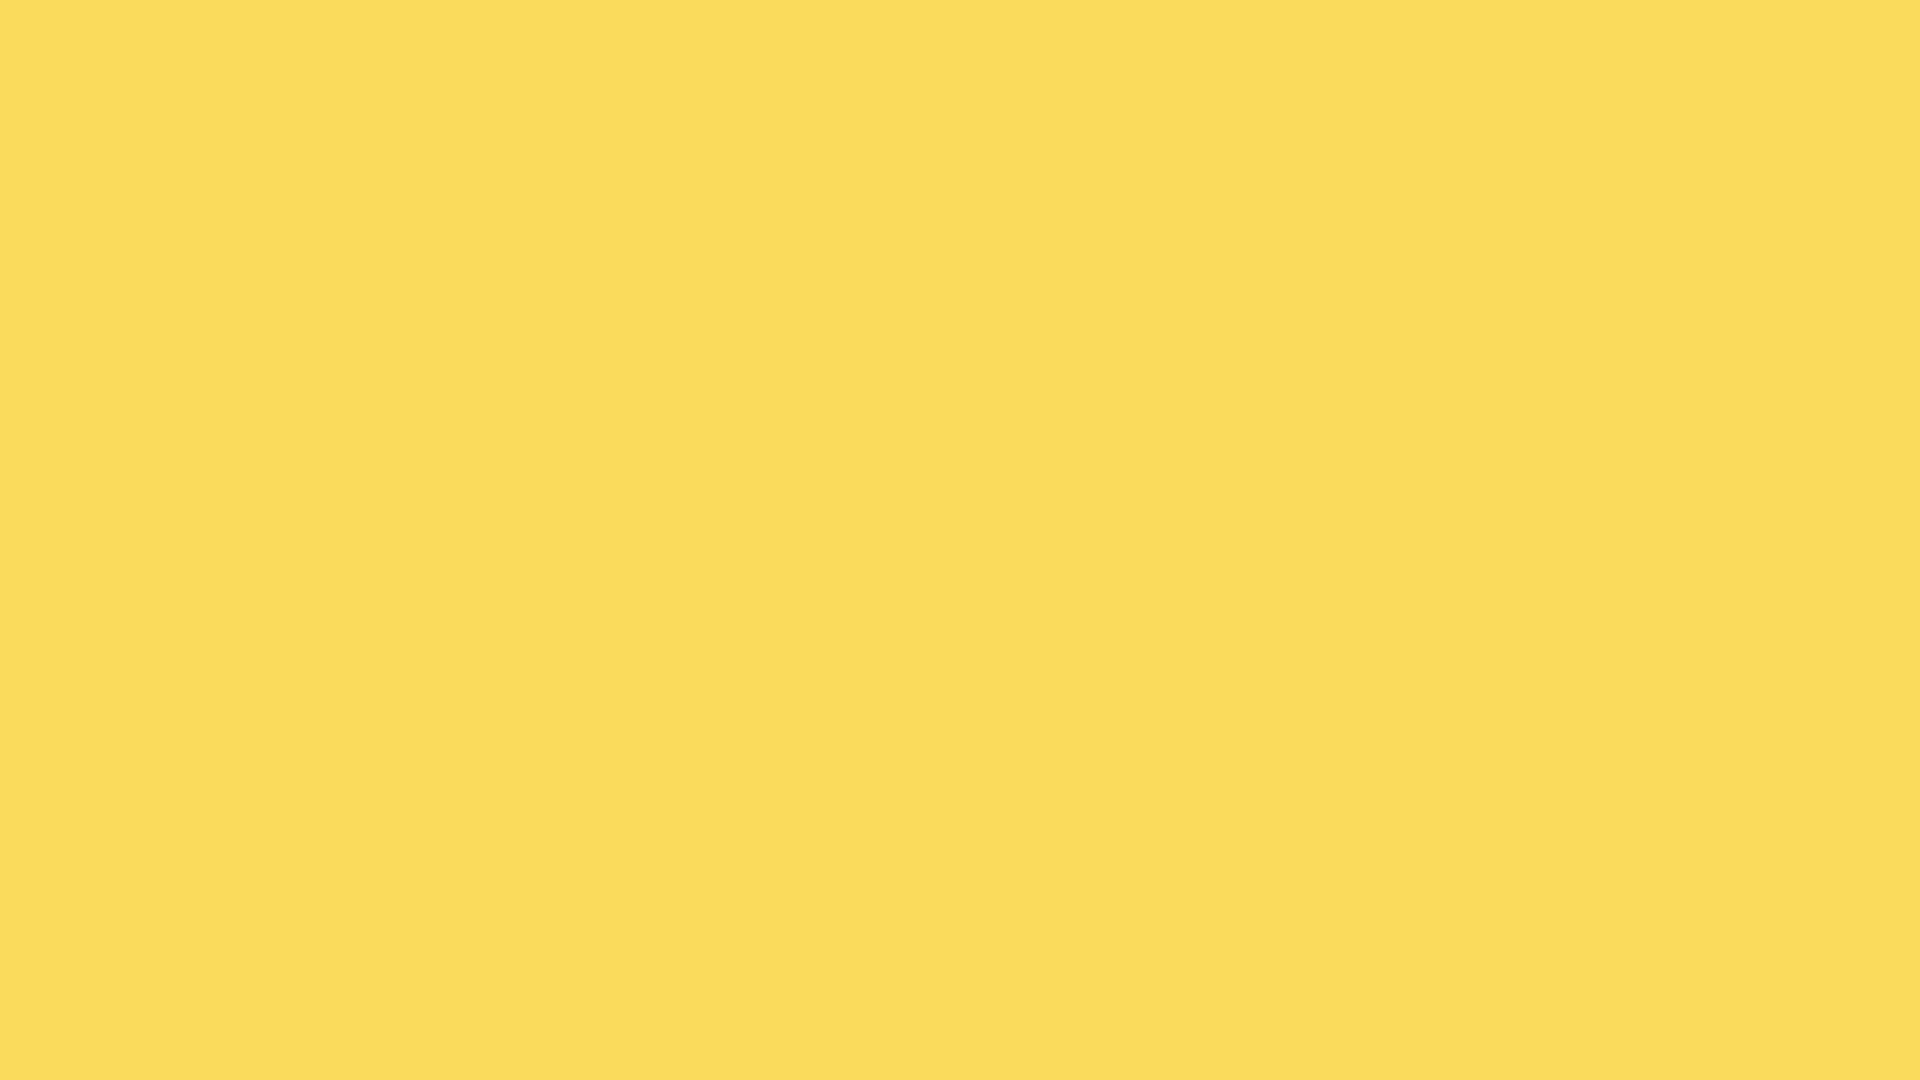 1920x1080 Royal Yellow Solid Color Background